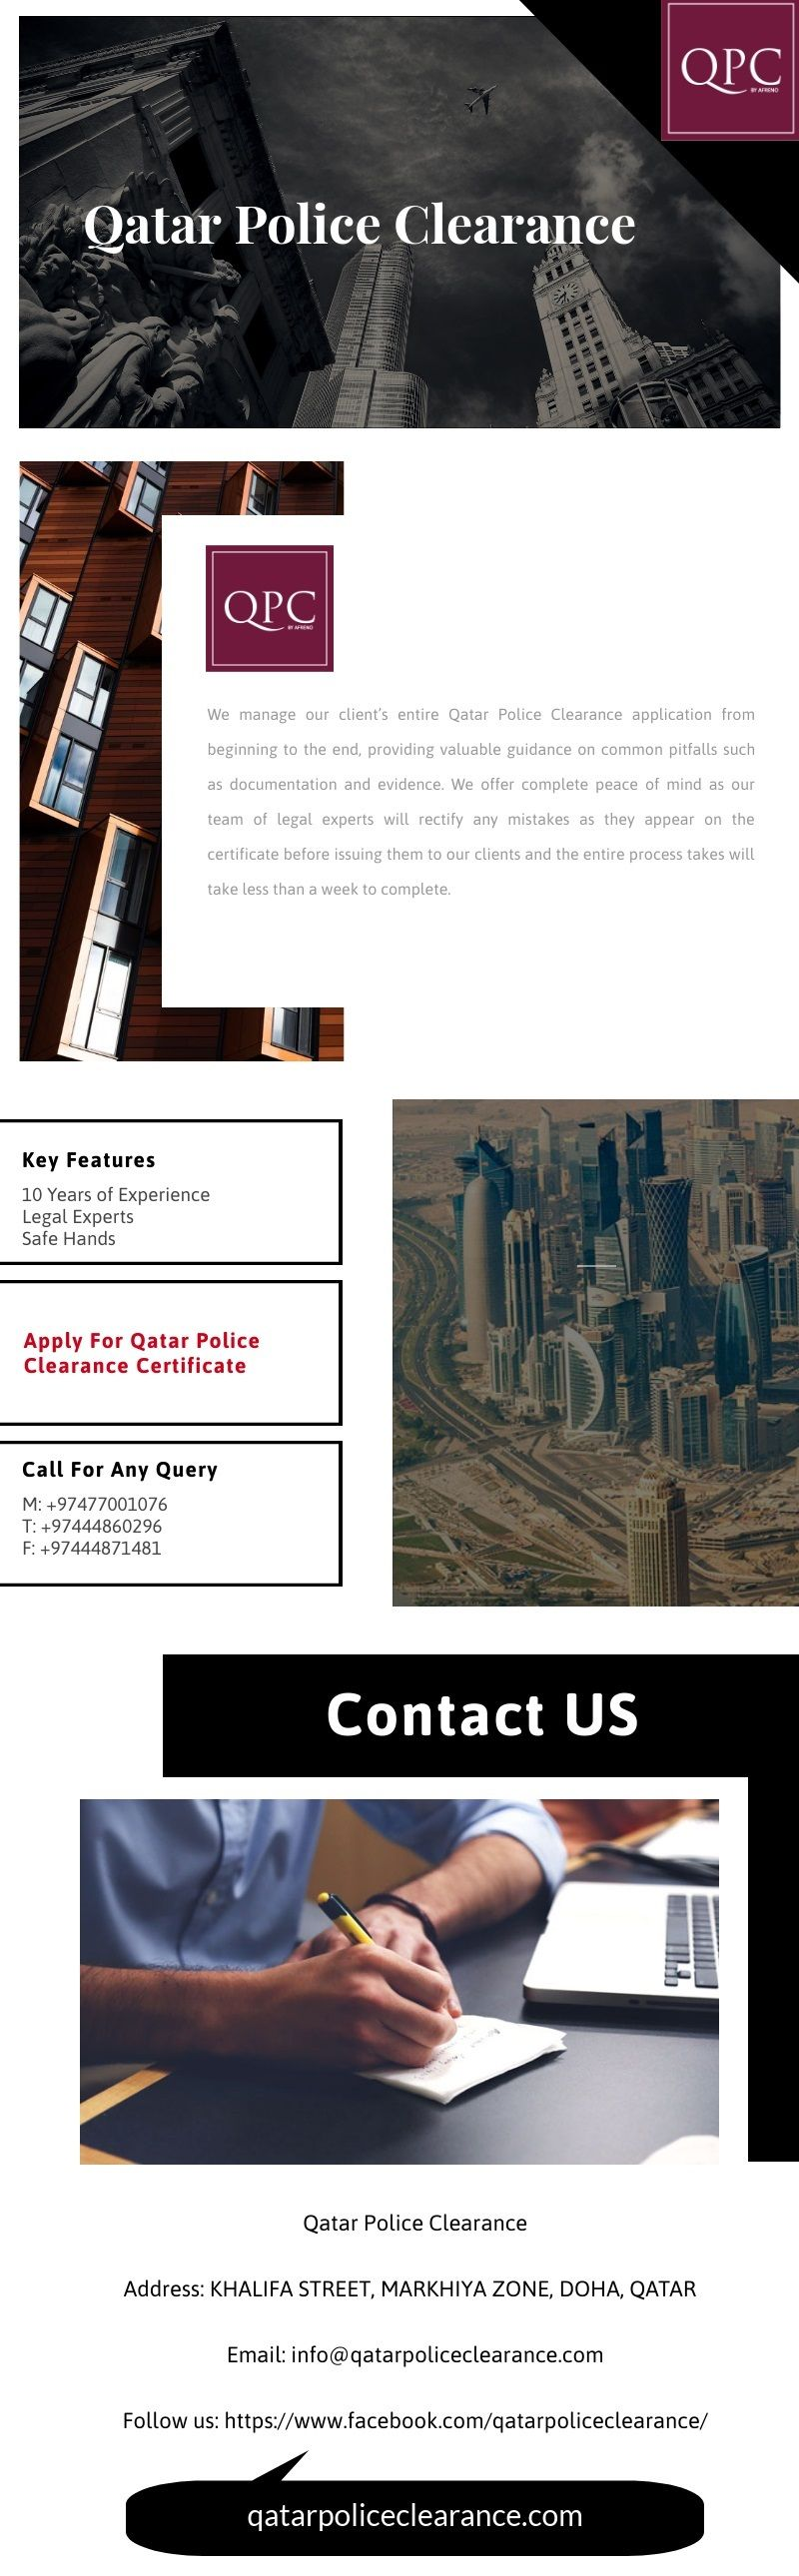 Qatar Police Clearance is a leading Qatar consultancy company